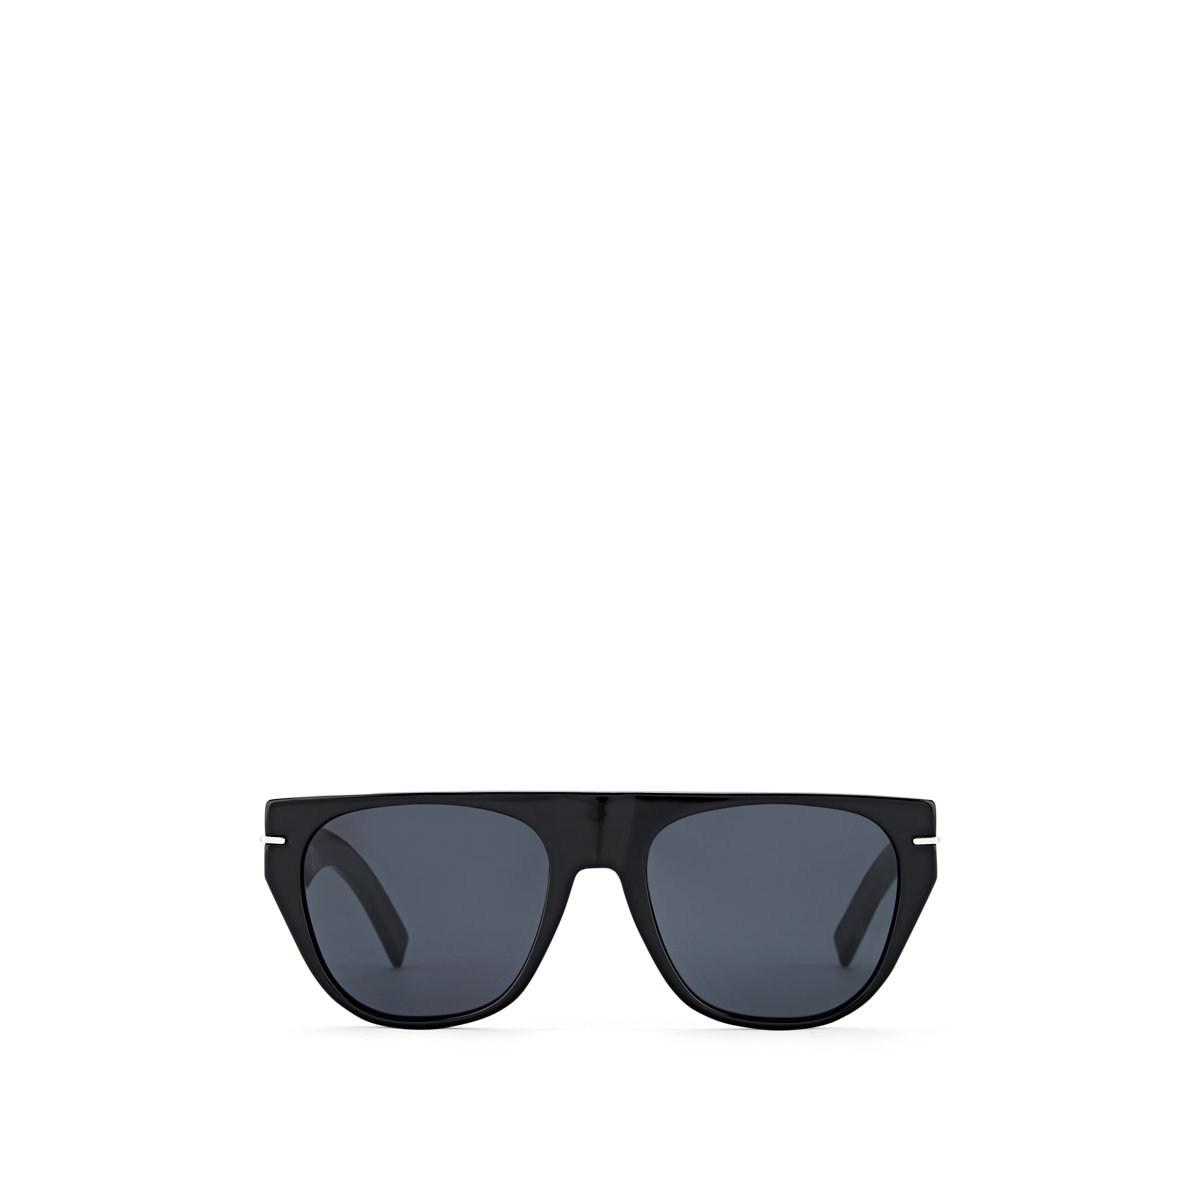 9e83ff9a4155a Dior Homme blacktie257s Sunglasses in Black for Men - Lyst